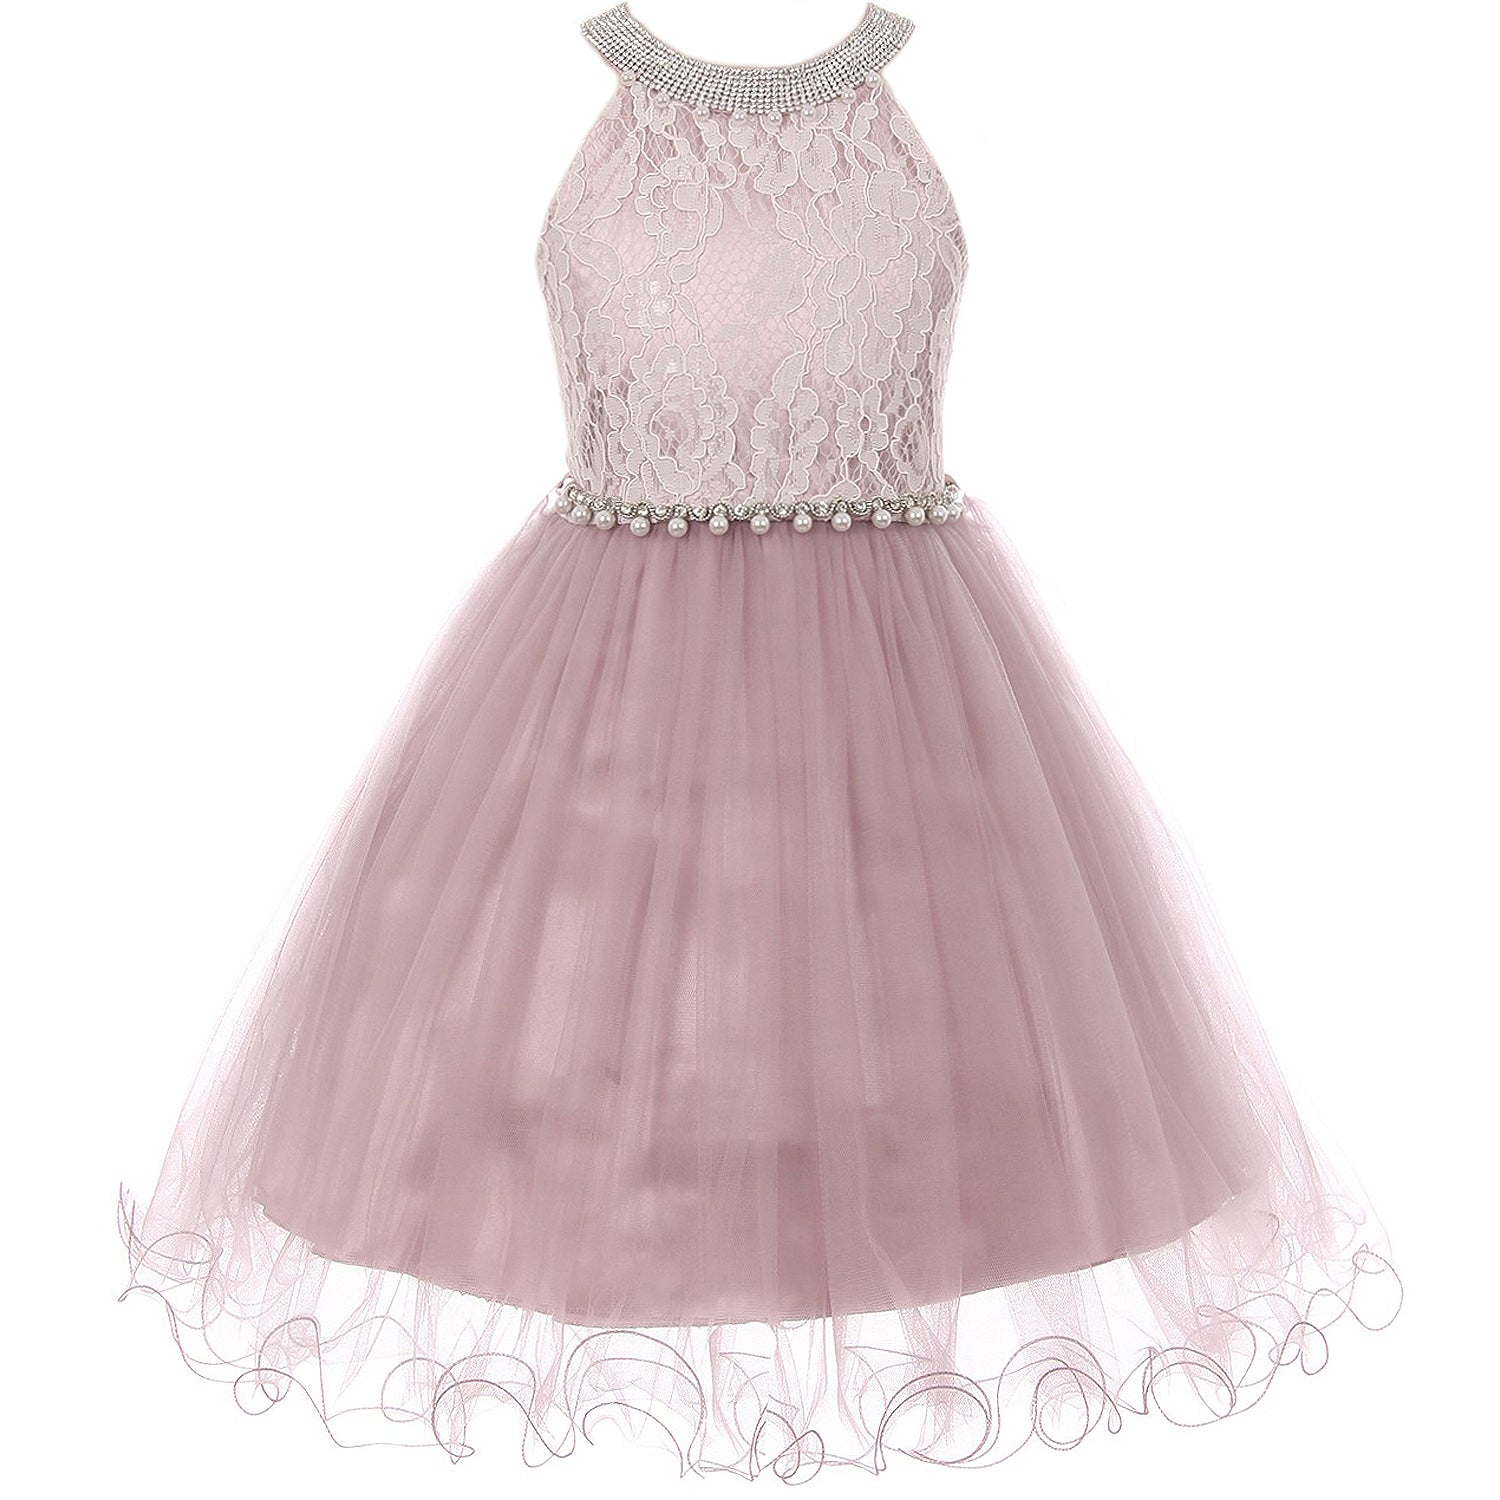 RHINESTONES HALTER NECK LACE BODICE WIRED TULLE SKIRT